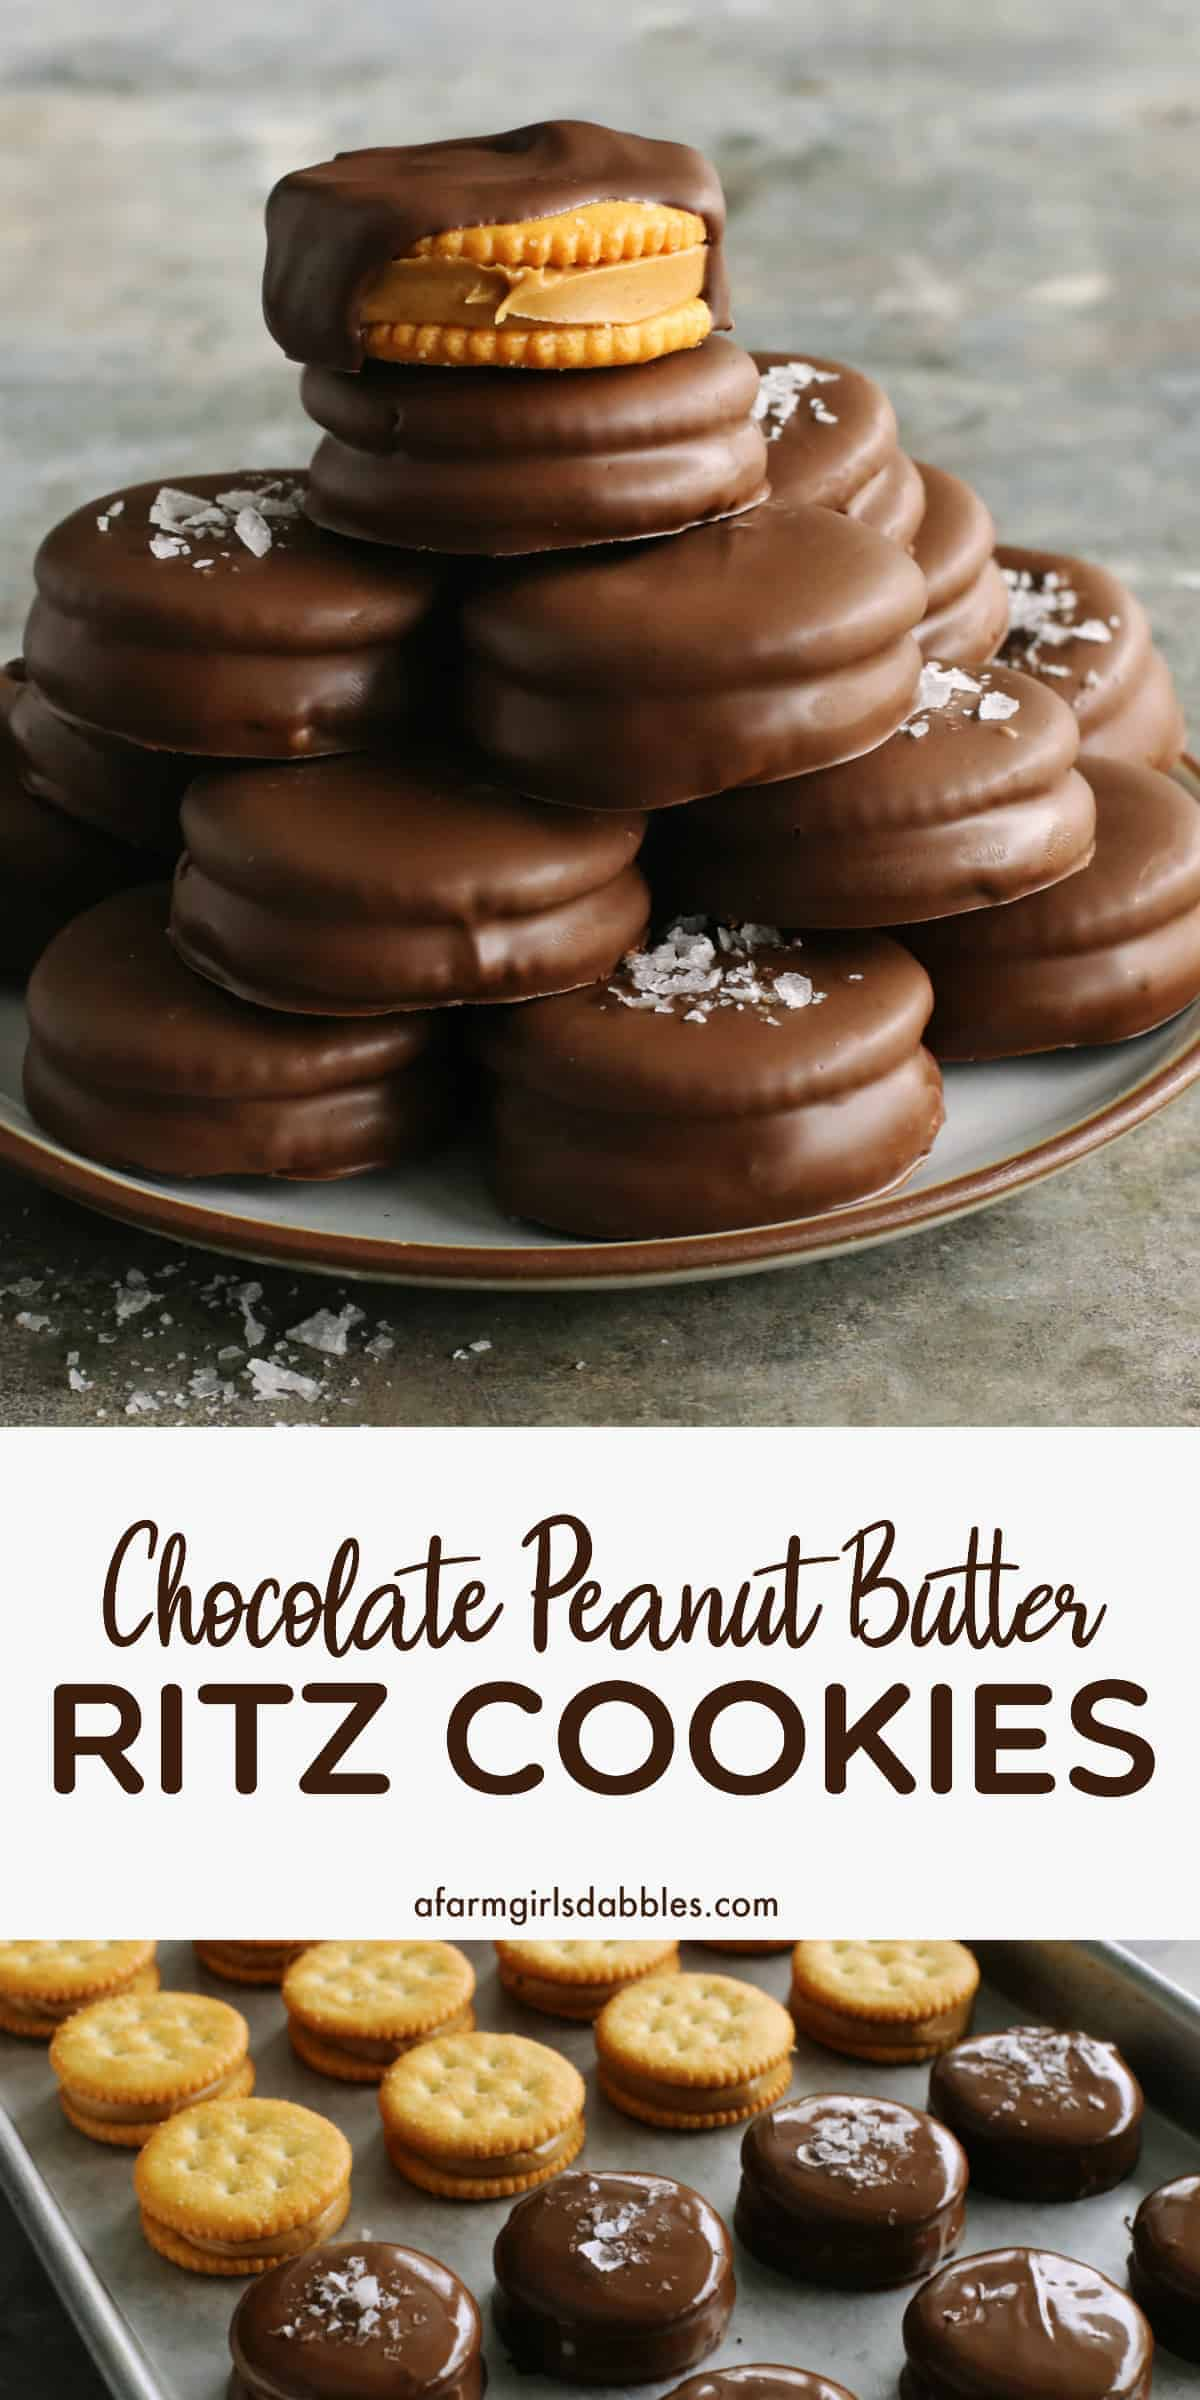 pinterest image of chocolate-dipped peanut butter Ritz cookies stacked on a plate